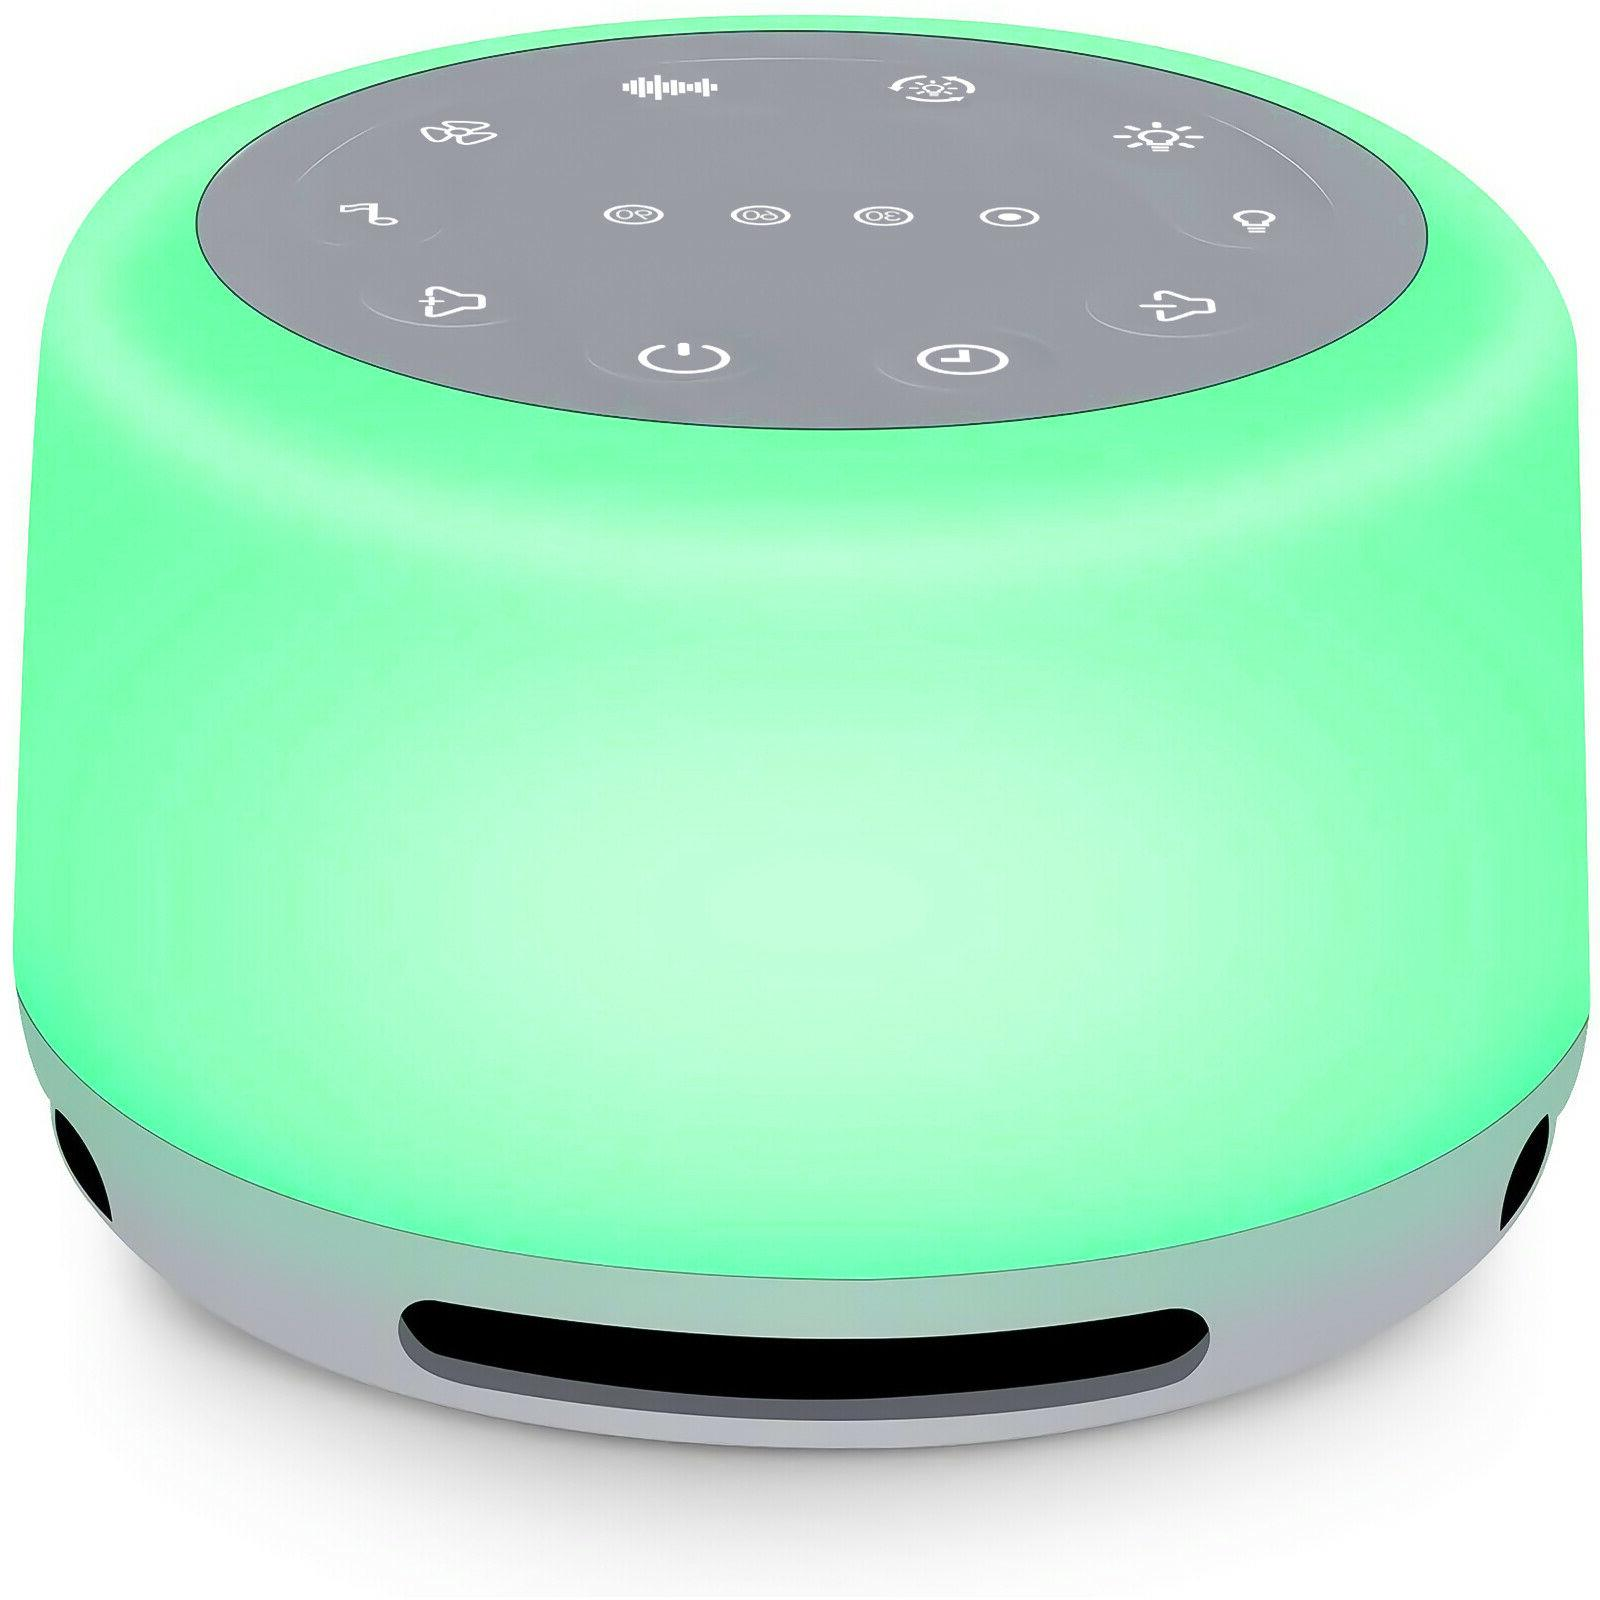 sleep sound machine 24 sounds rechargeable white